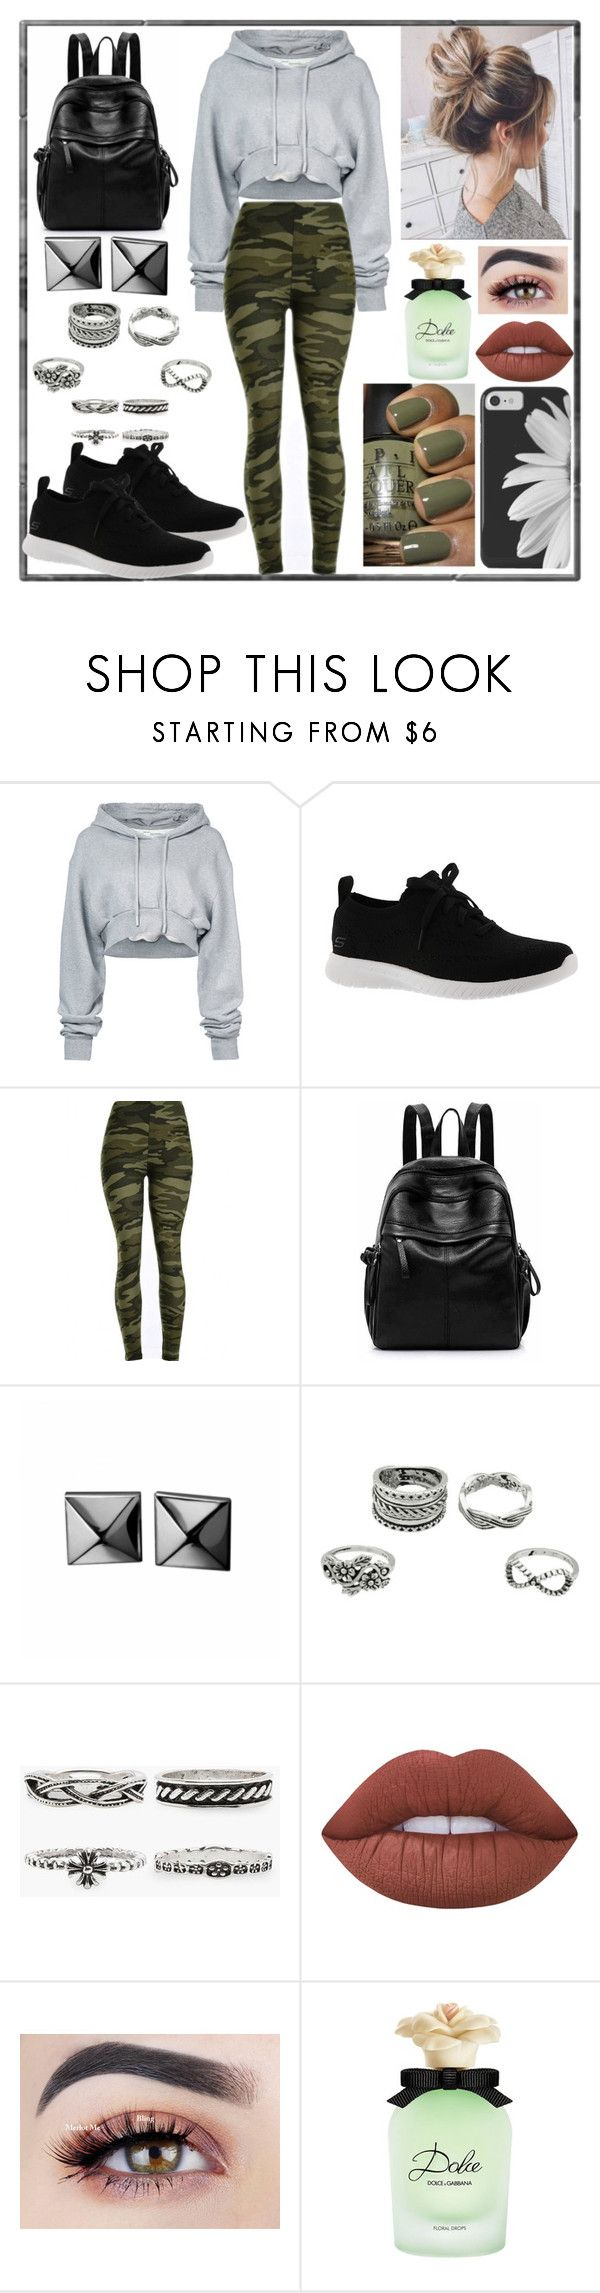 """🖤⚪️🌱"" by sbeidy ❤ liked on Polyvore featuring Off-White, Skechers, WithChic, Waterford, Lime Crime and Dolce&Gabbana"